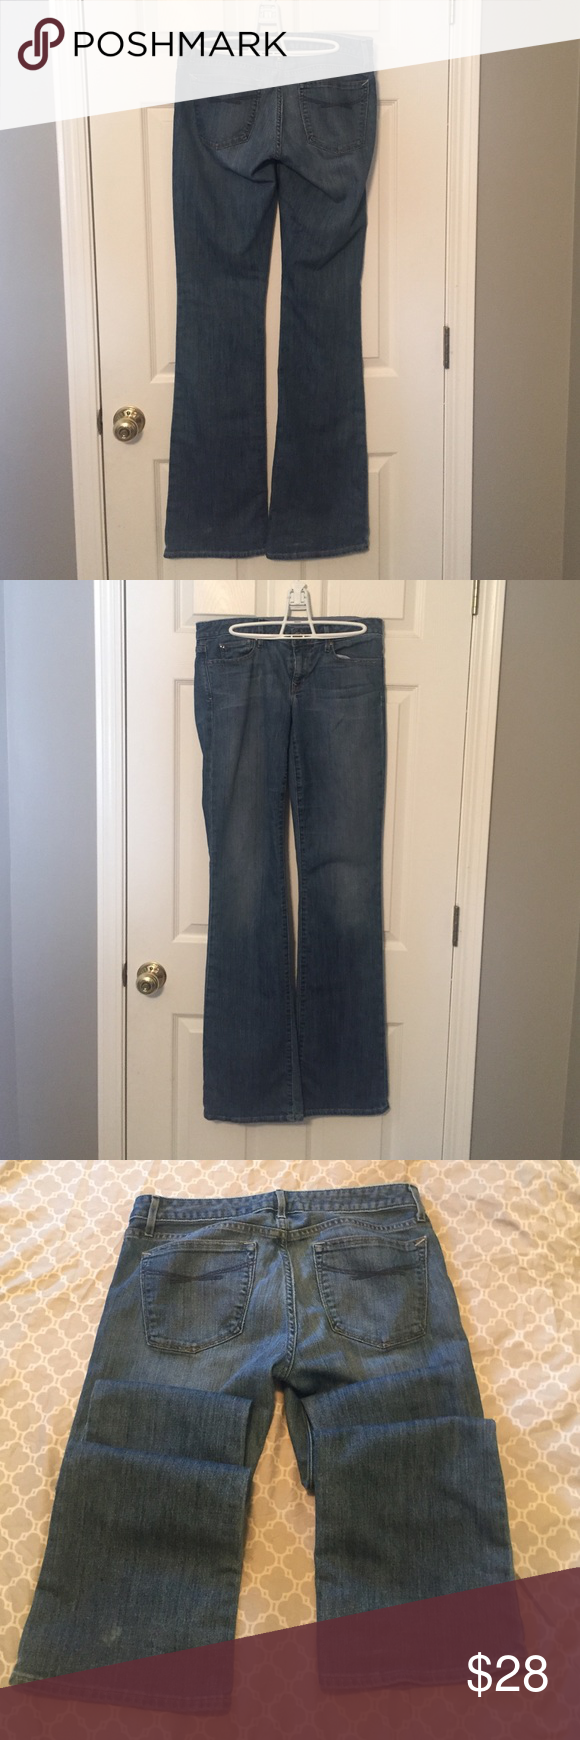 Vintage Gap 8xl jeans! Gently used Gap curvy bootcut jeans in size 8 extra long. These are the perfect shade of medium blue, and have the classic blue embroidery on the back pockets. No rips or tears, just slight signs of wear by the back cuffs which are barely noticeable. These will be your go to jeans! GAP Jeans Boot Cut